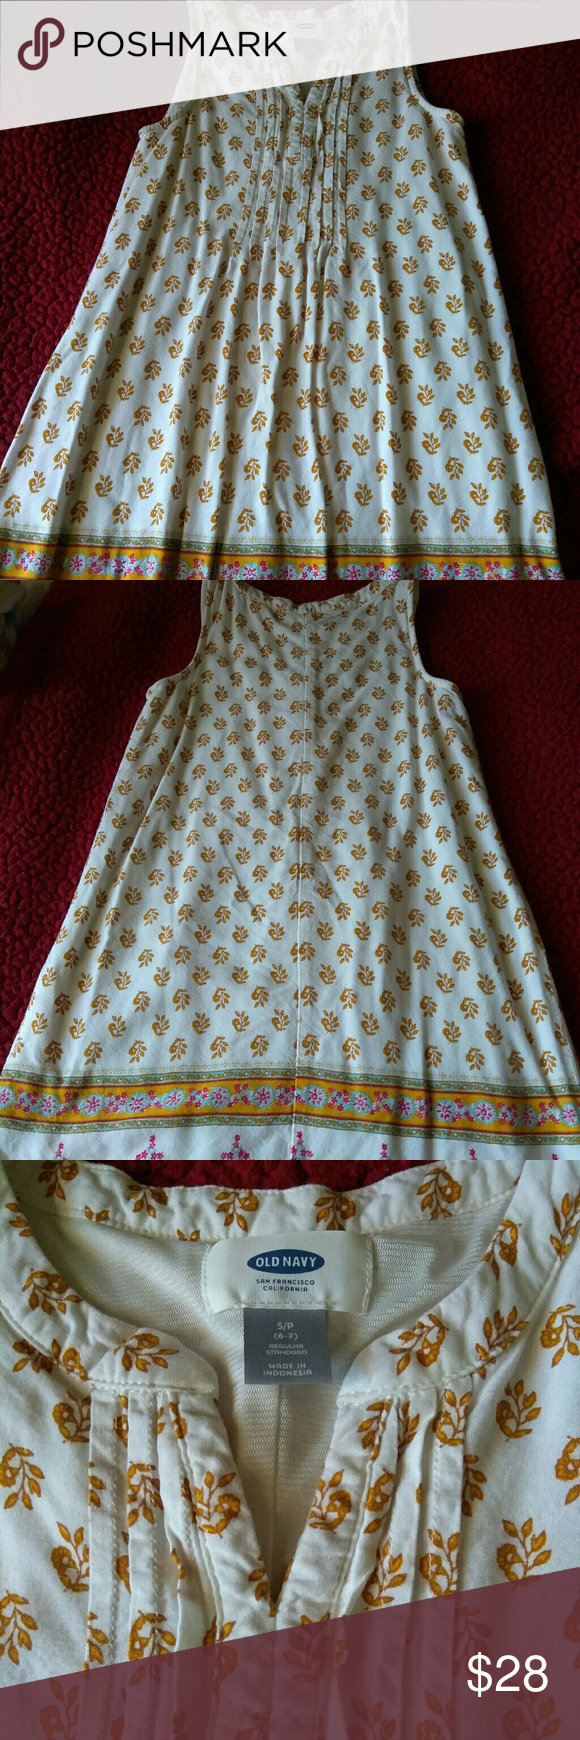 Old Navy dress girl Only once used.. perfect condition Old Navy Dresses Casual